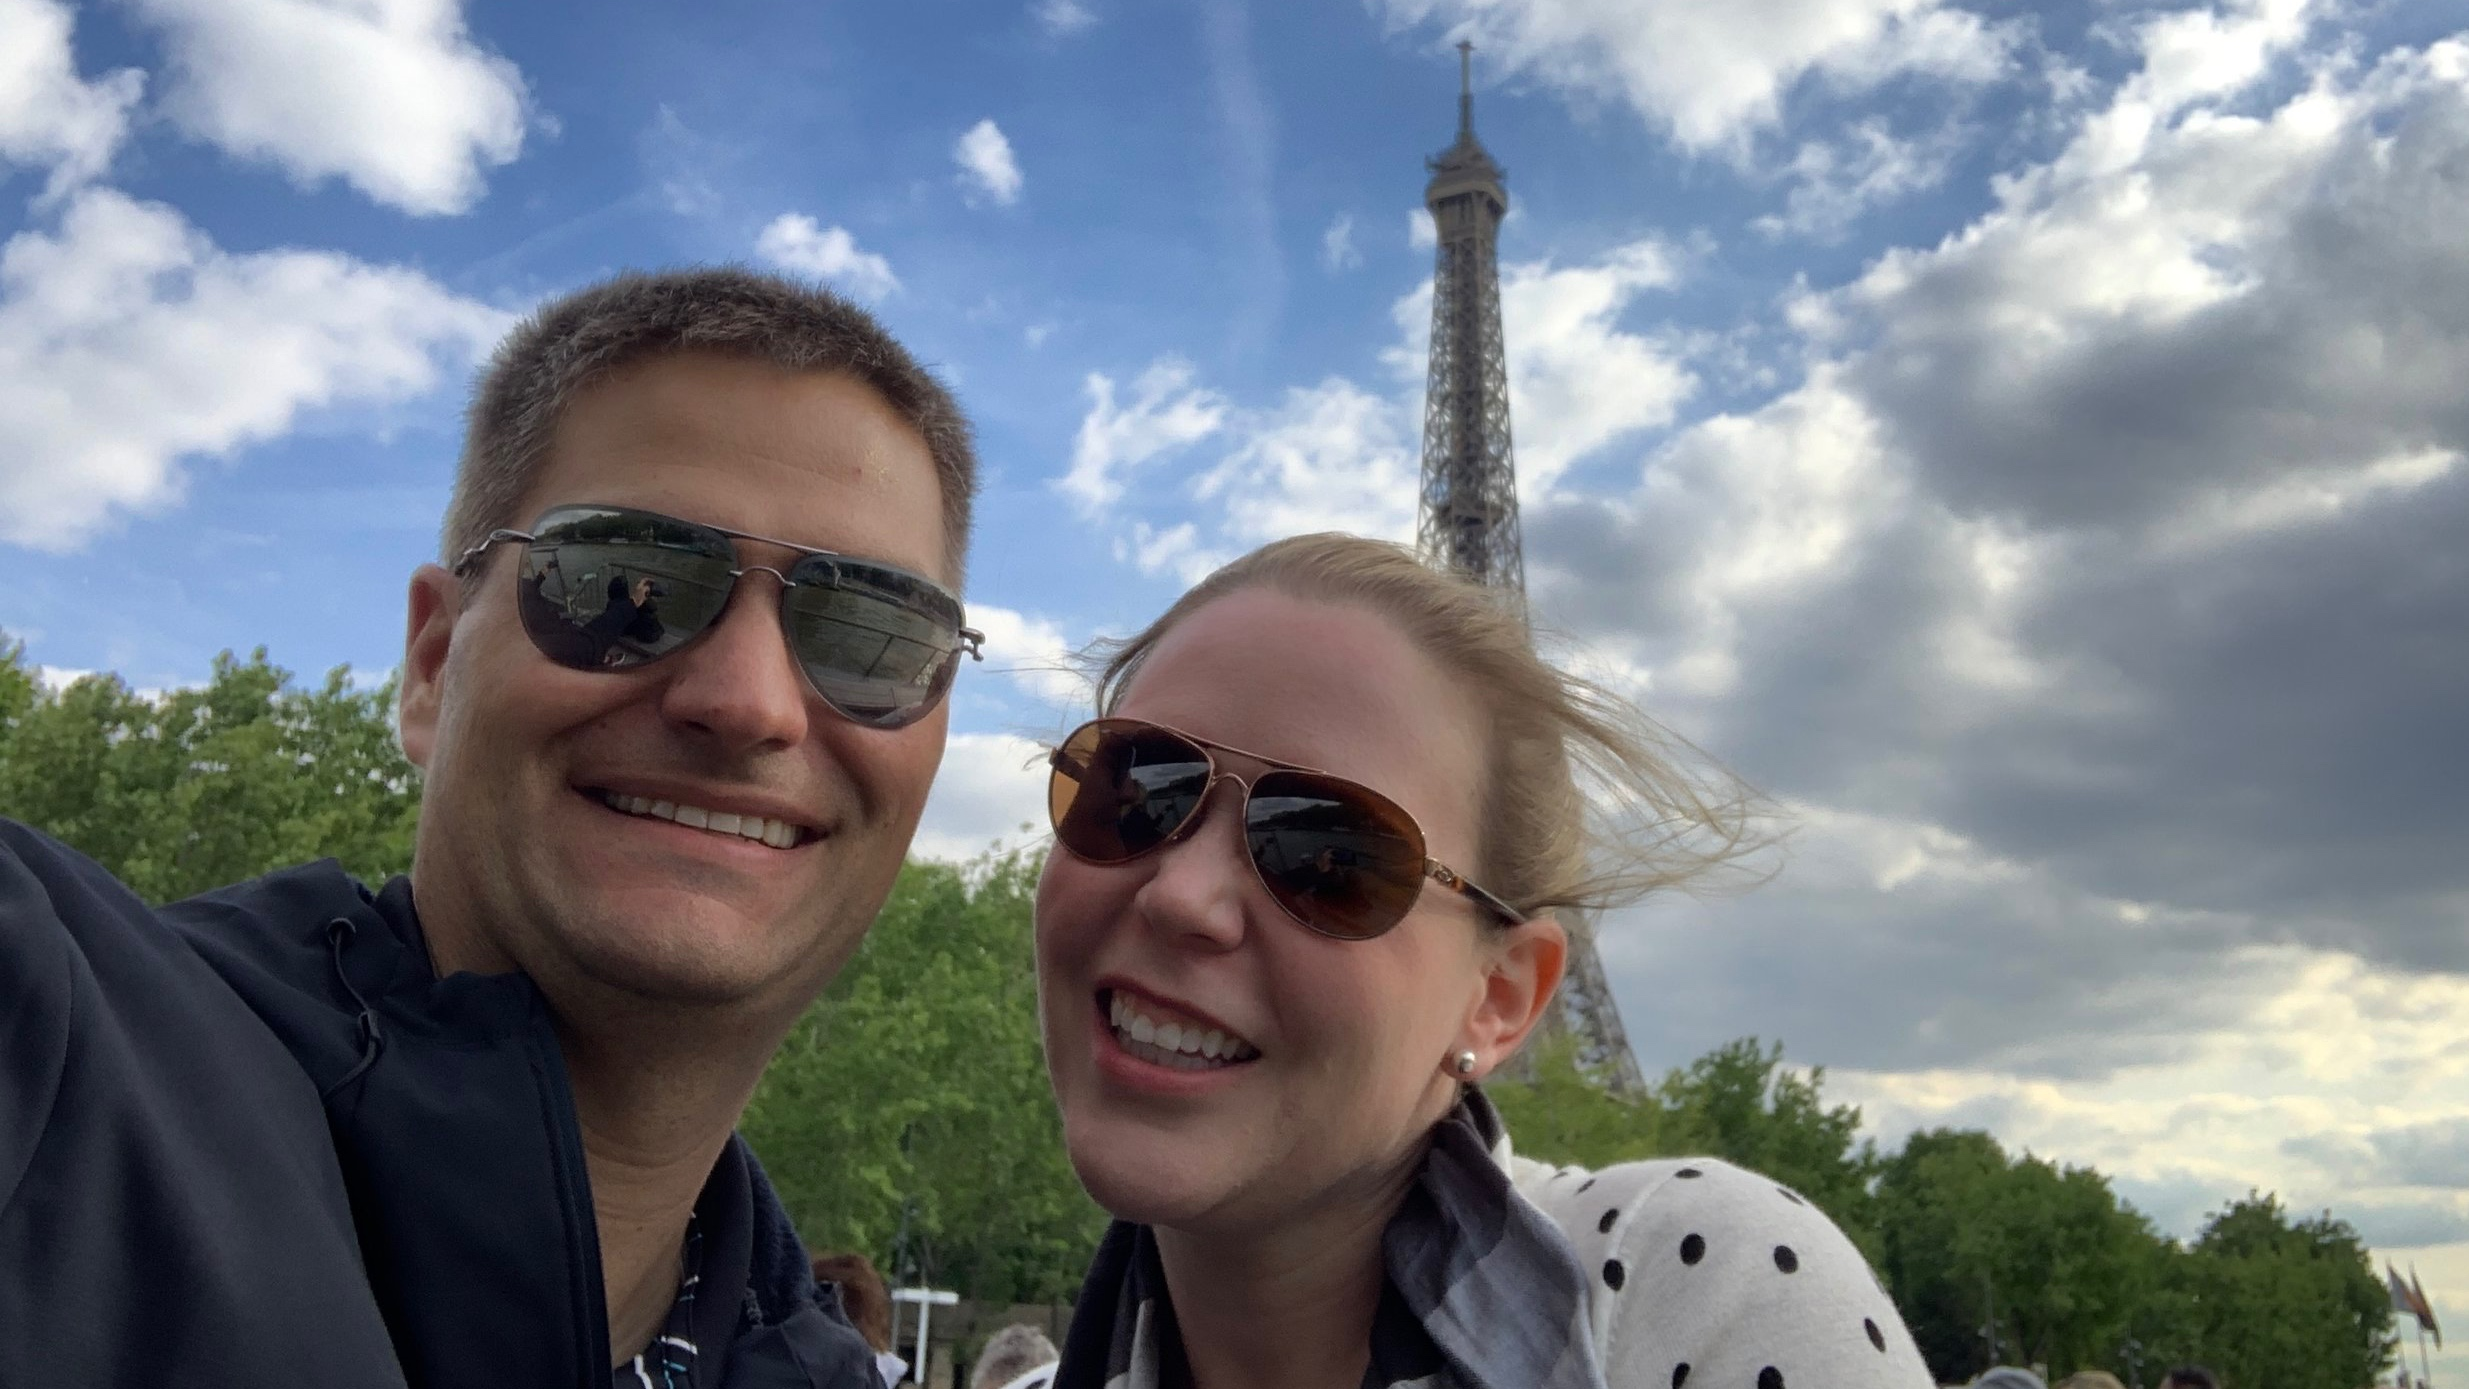 Visting Paris was one of our bucket list trips and we had a blast!